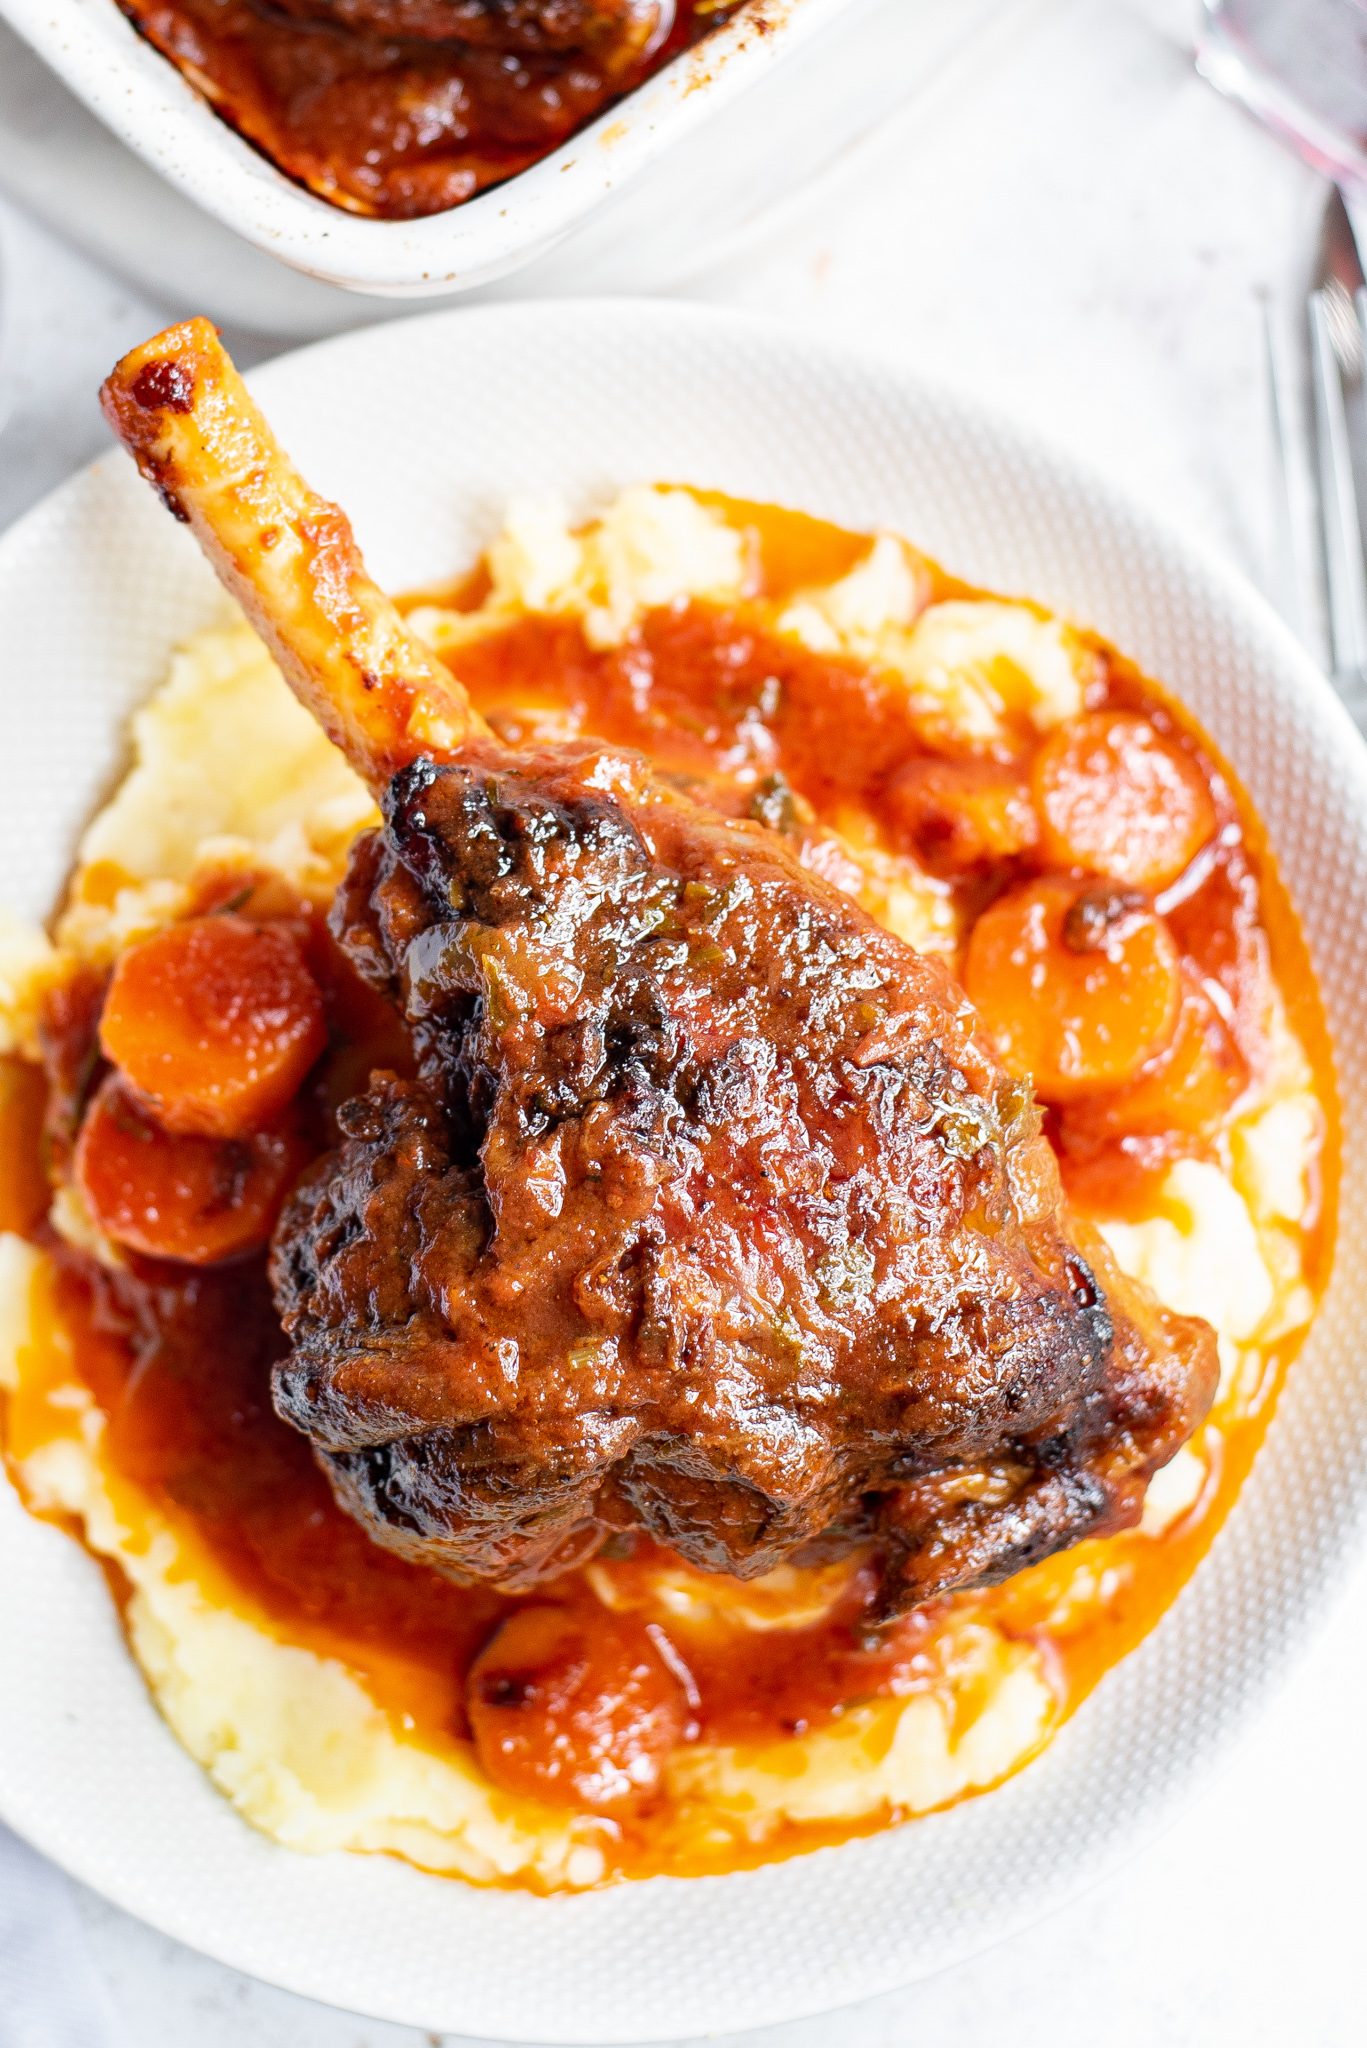 Braised Lamb Shanks Recipe with carrots.